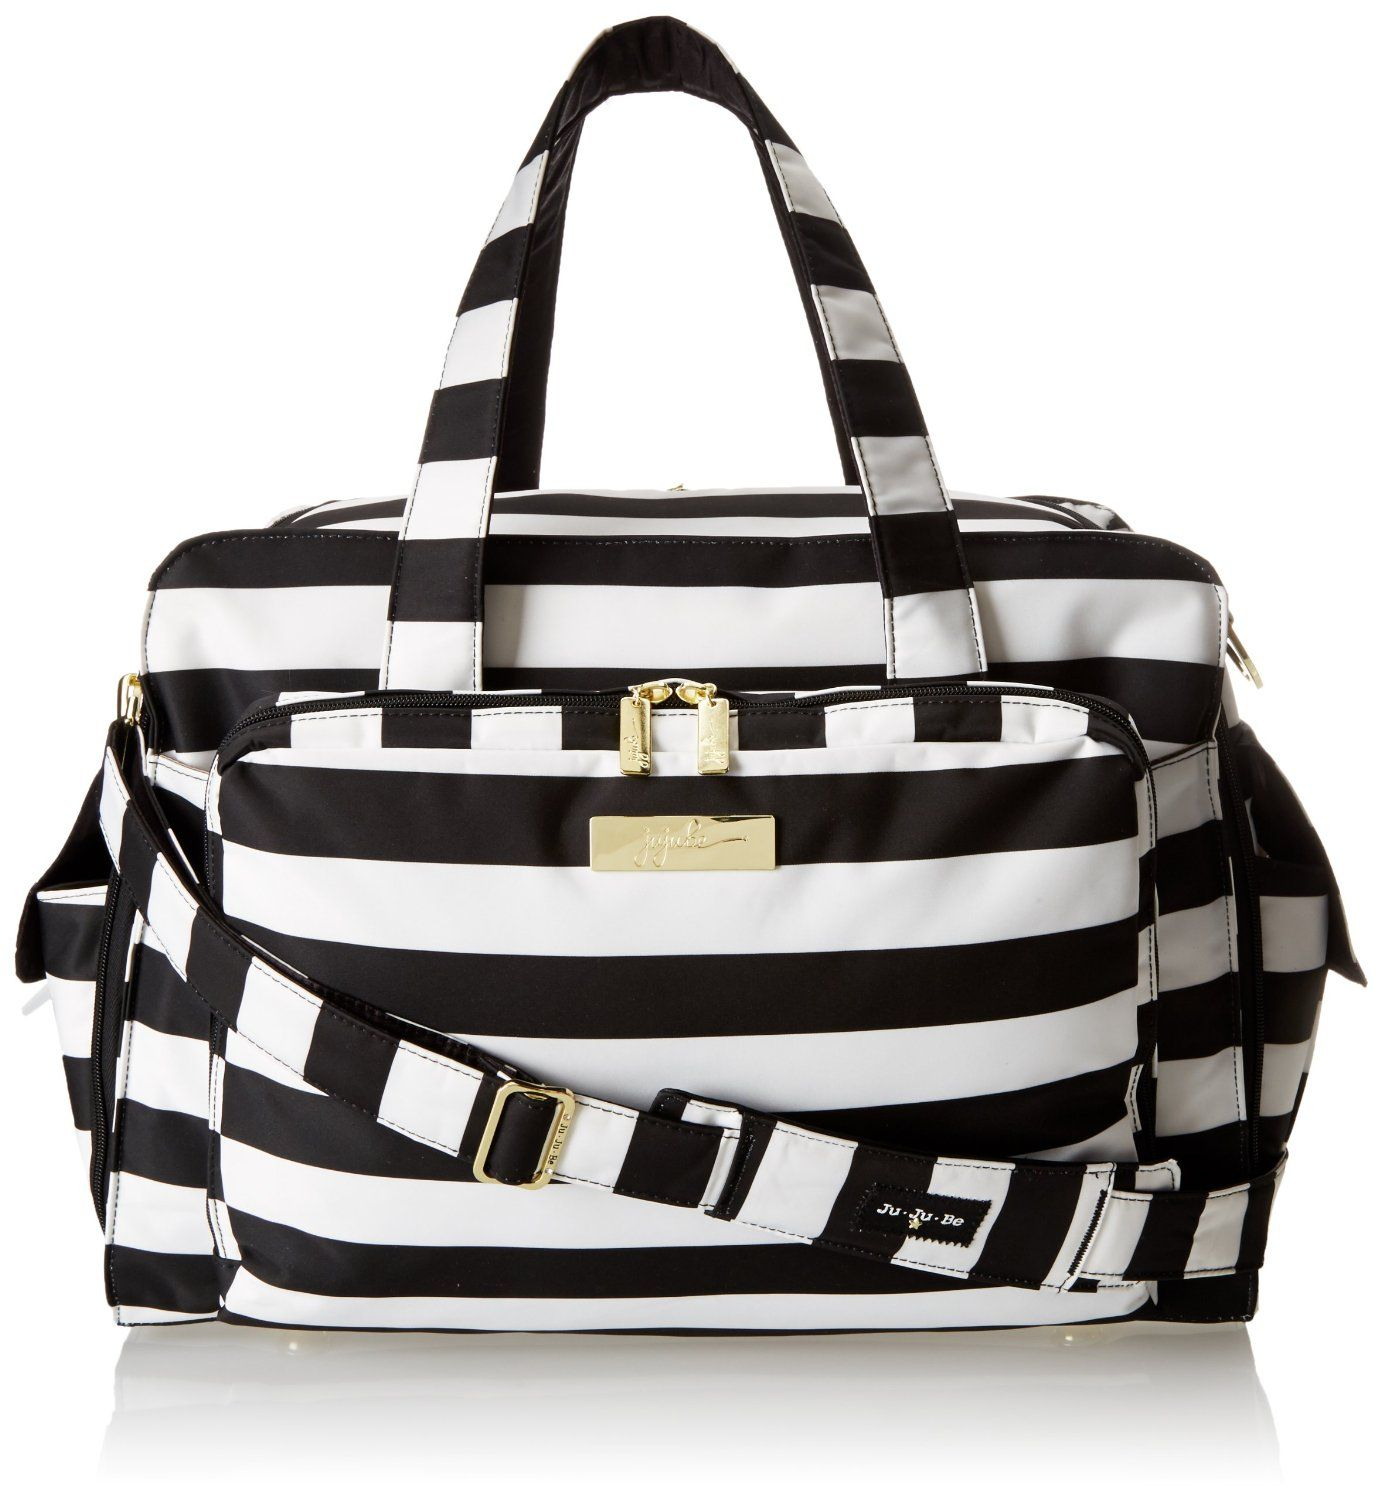 Ju Be Legacy Collection Prepared Diaper Bag The First Lady Baby Bags For Boysstylish